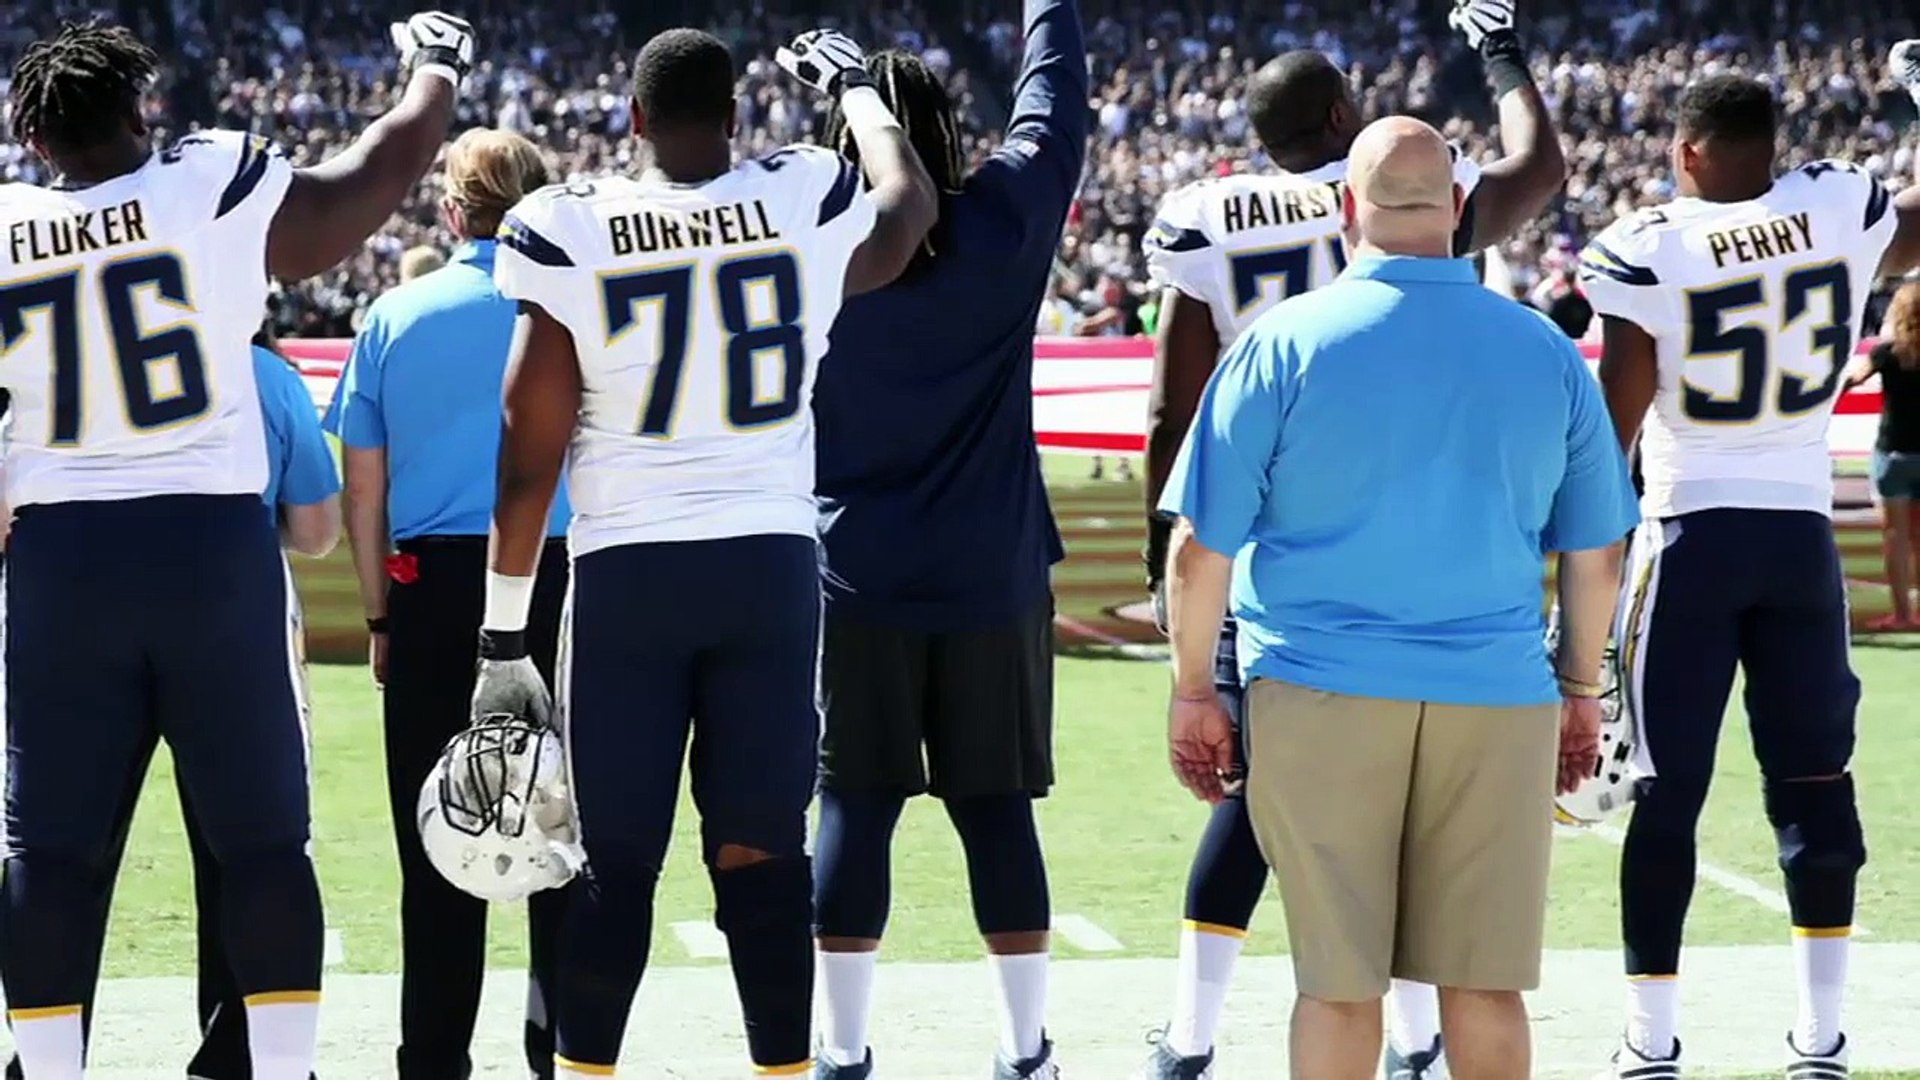 White NFL players show support for teammates protesting national anthem _ First Take _ ESPN-7LzMuZdC